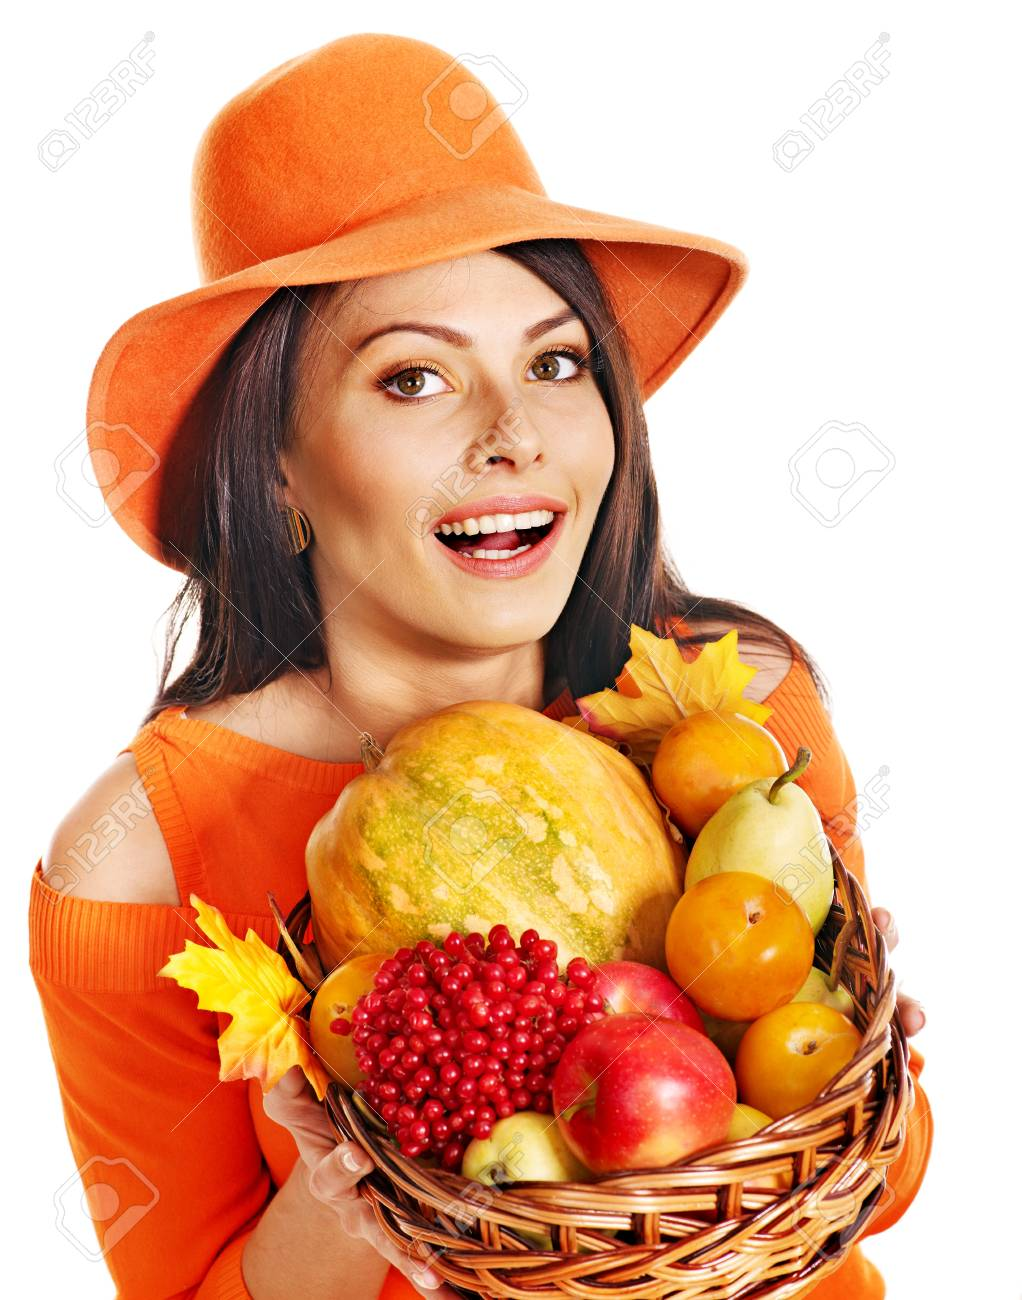 Woman holding autumn basket with fruit and vegetable. Stock Photo - 15290455